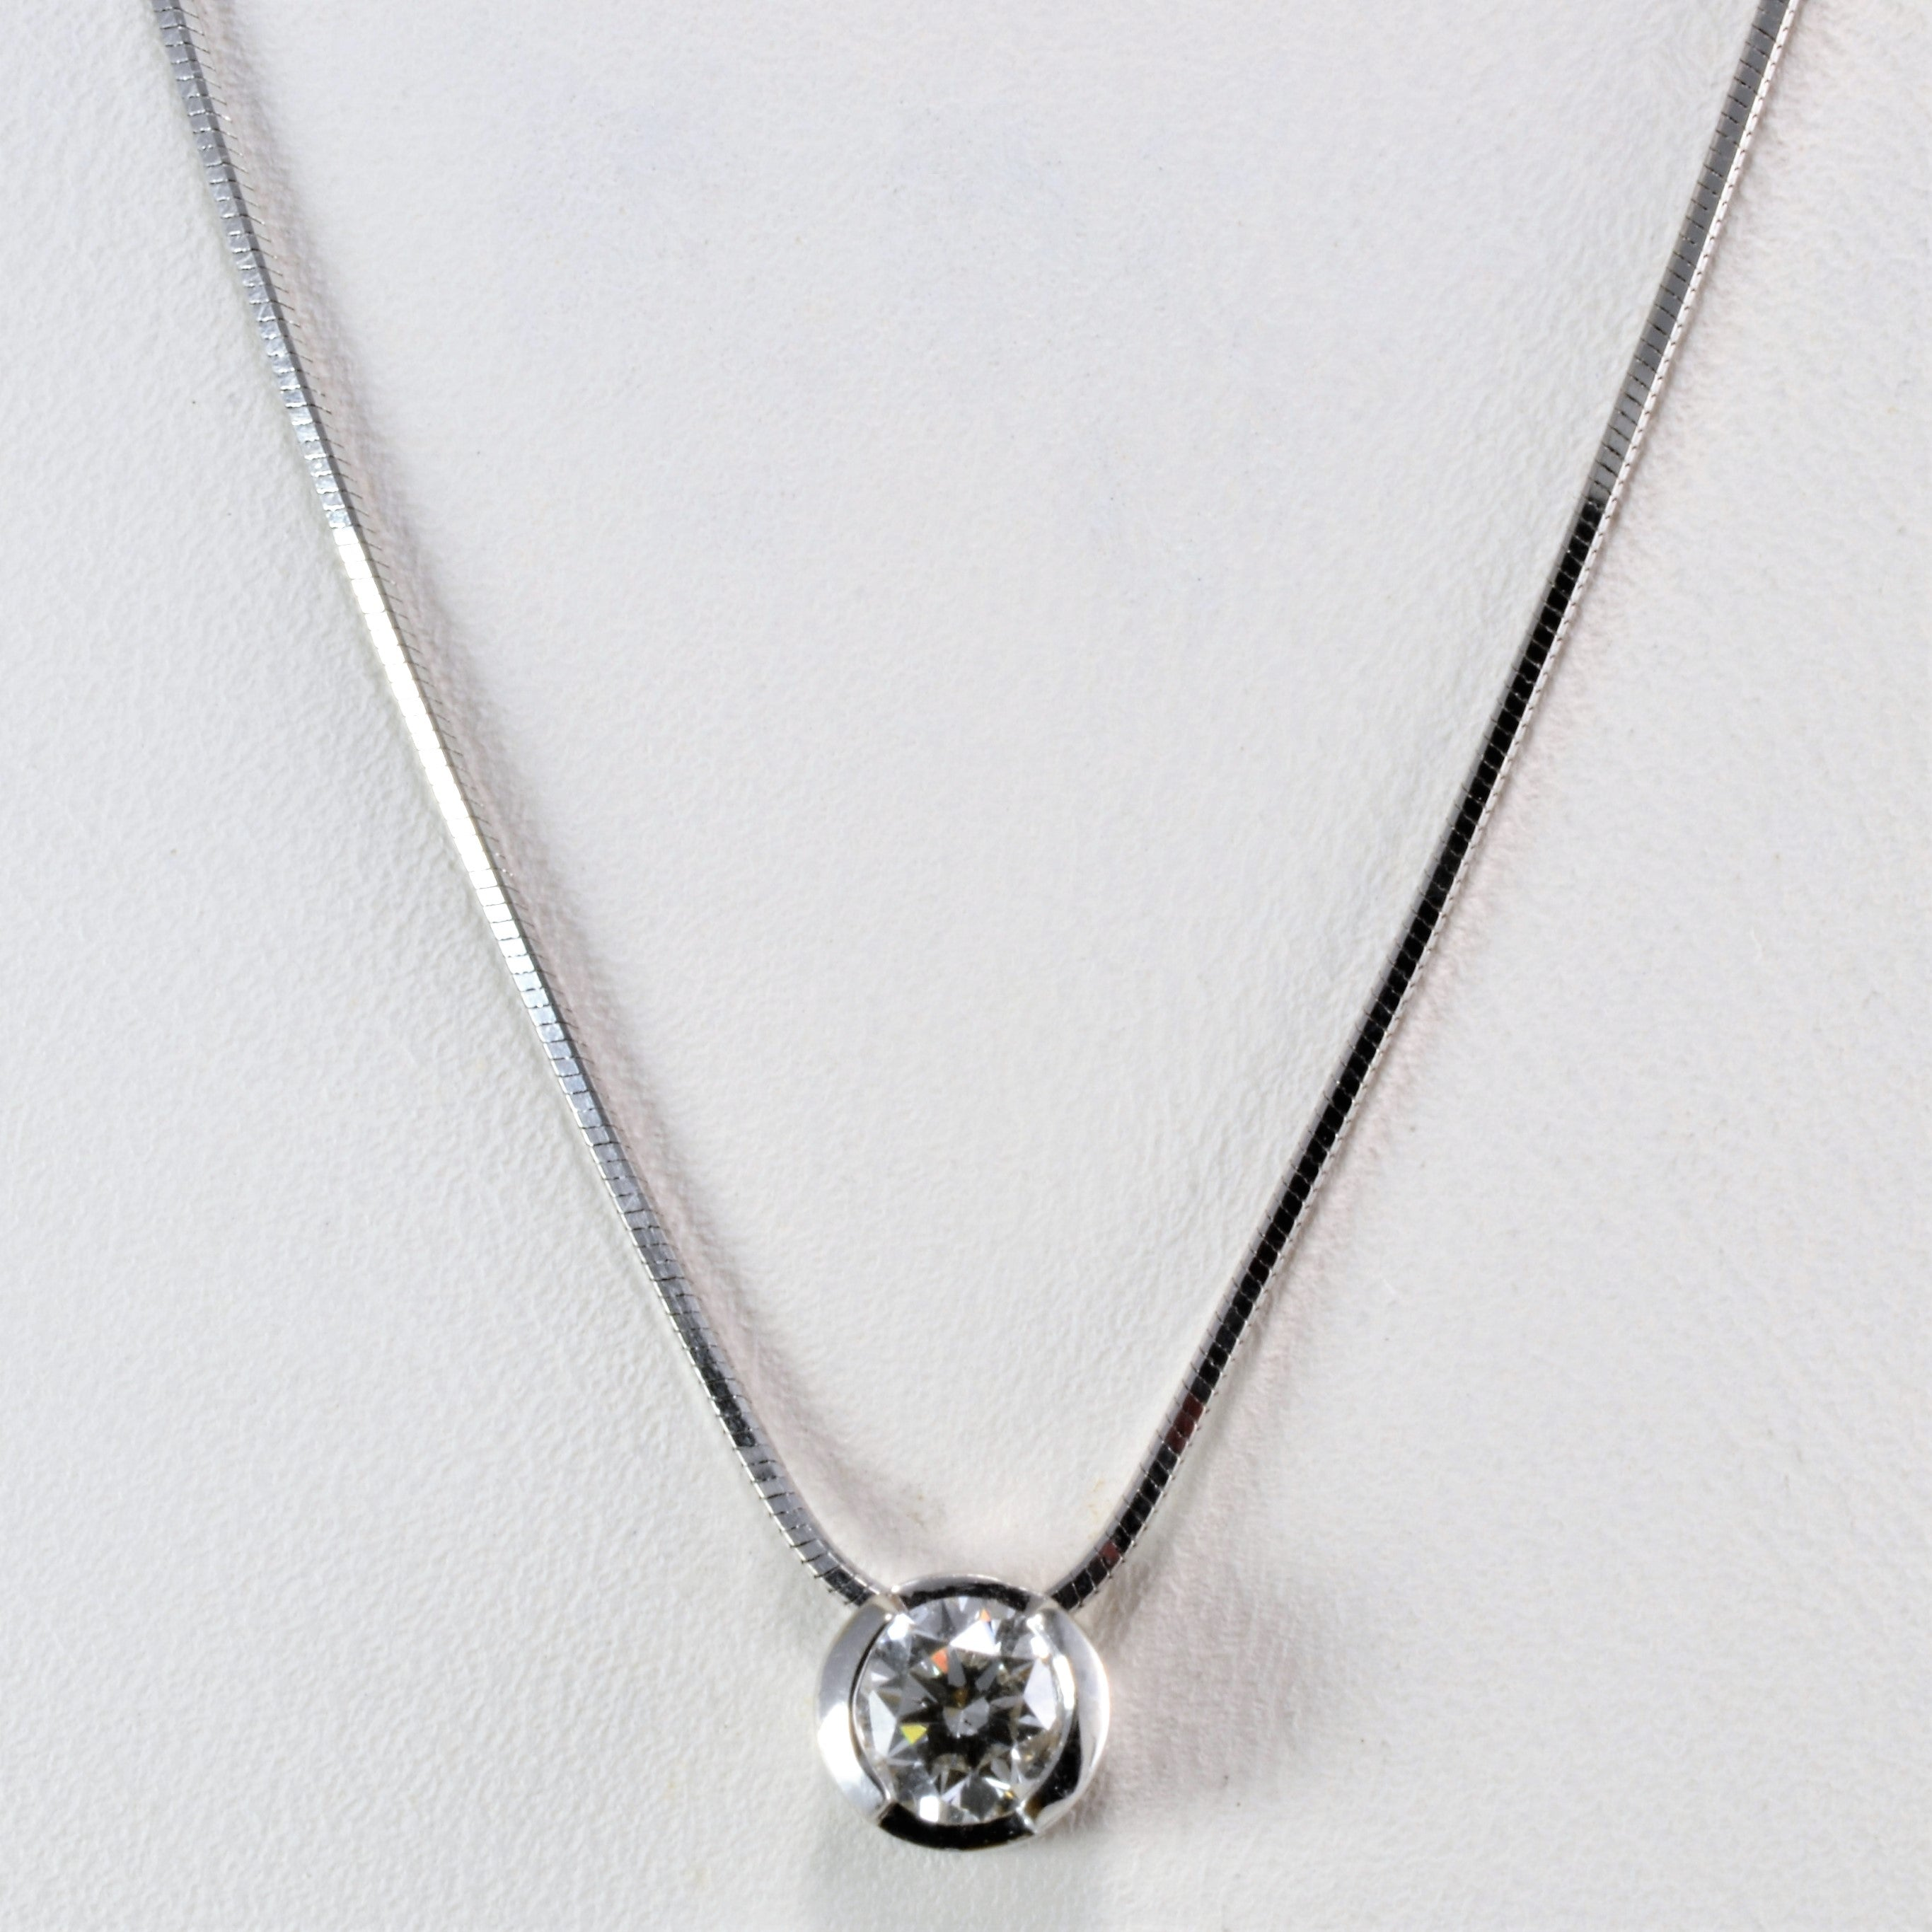 pendant ways solitaire set bezel ct diamond dsc products necklace